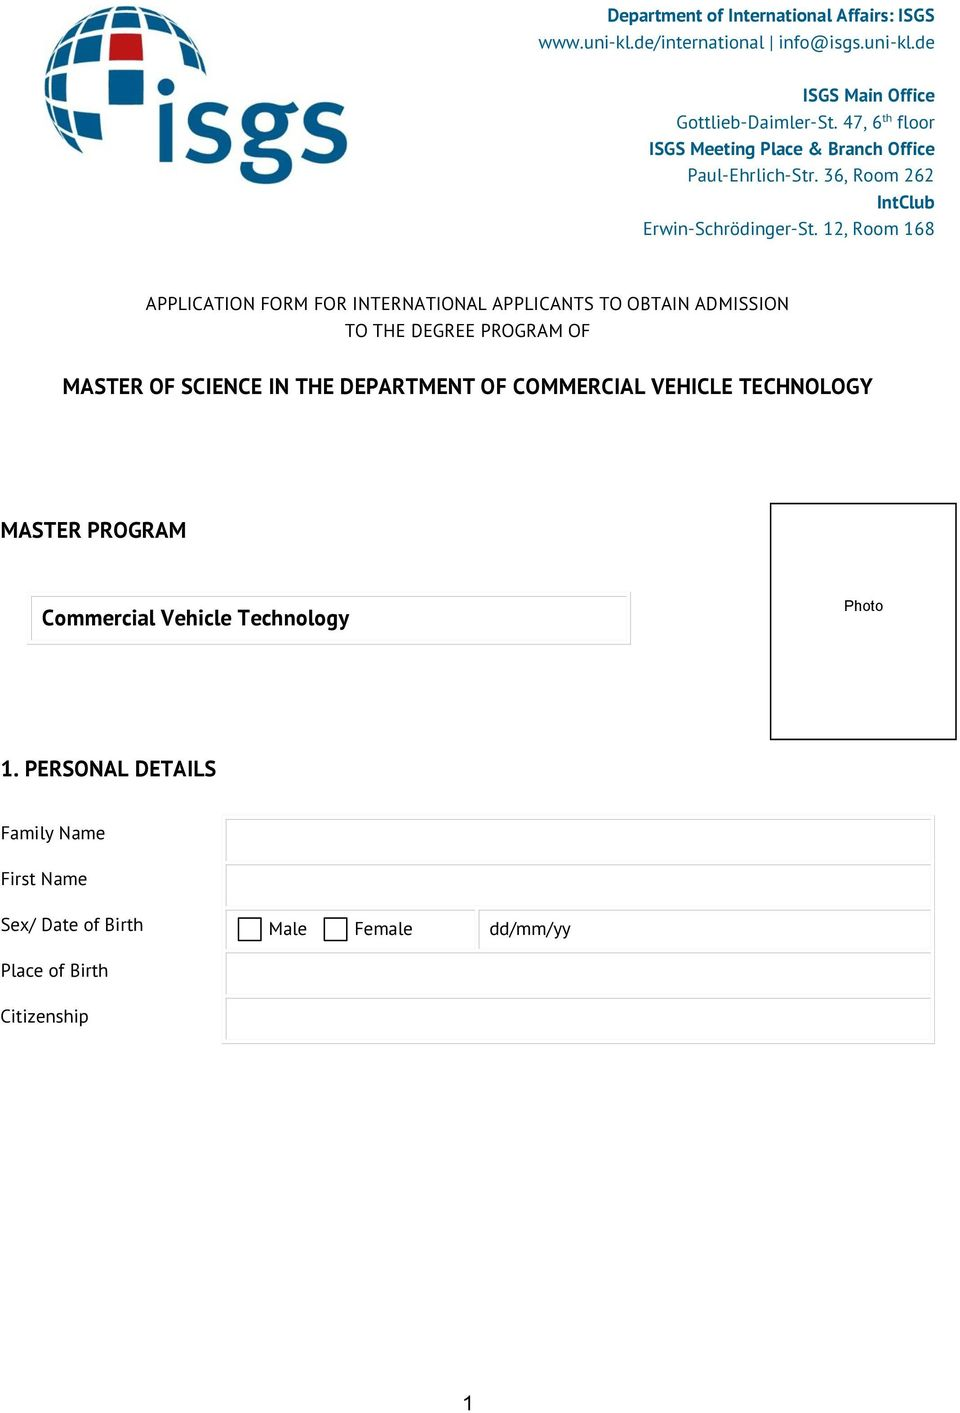 12, Room 168 APPLICATION FORM FOR INTERNATIONAL APPLICANTS TO OBTAIN ADMISSION TO THE DEGREE PROGRAM OF MASTER OF SCIENCE IN THE DEPARTMENT OF